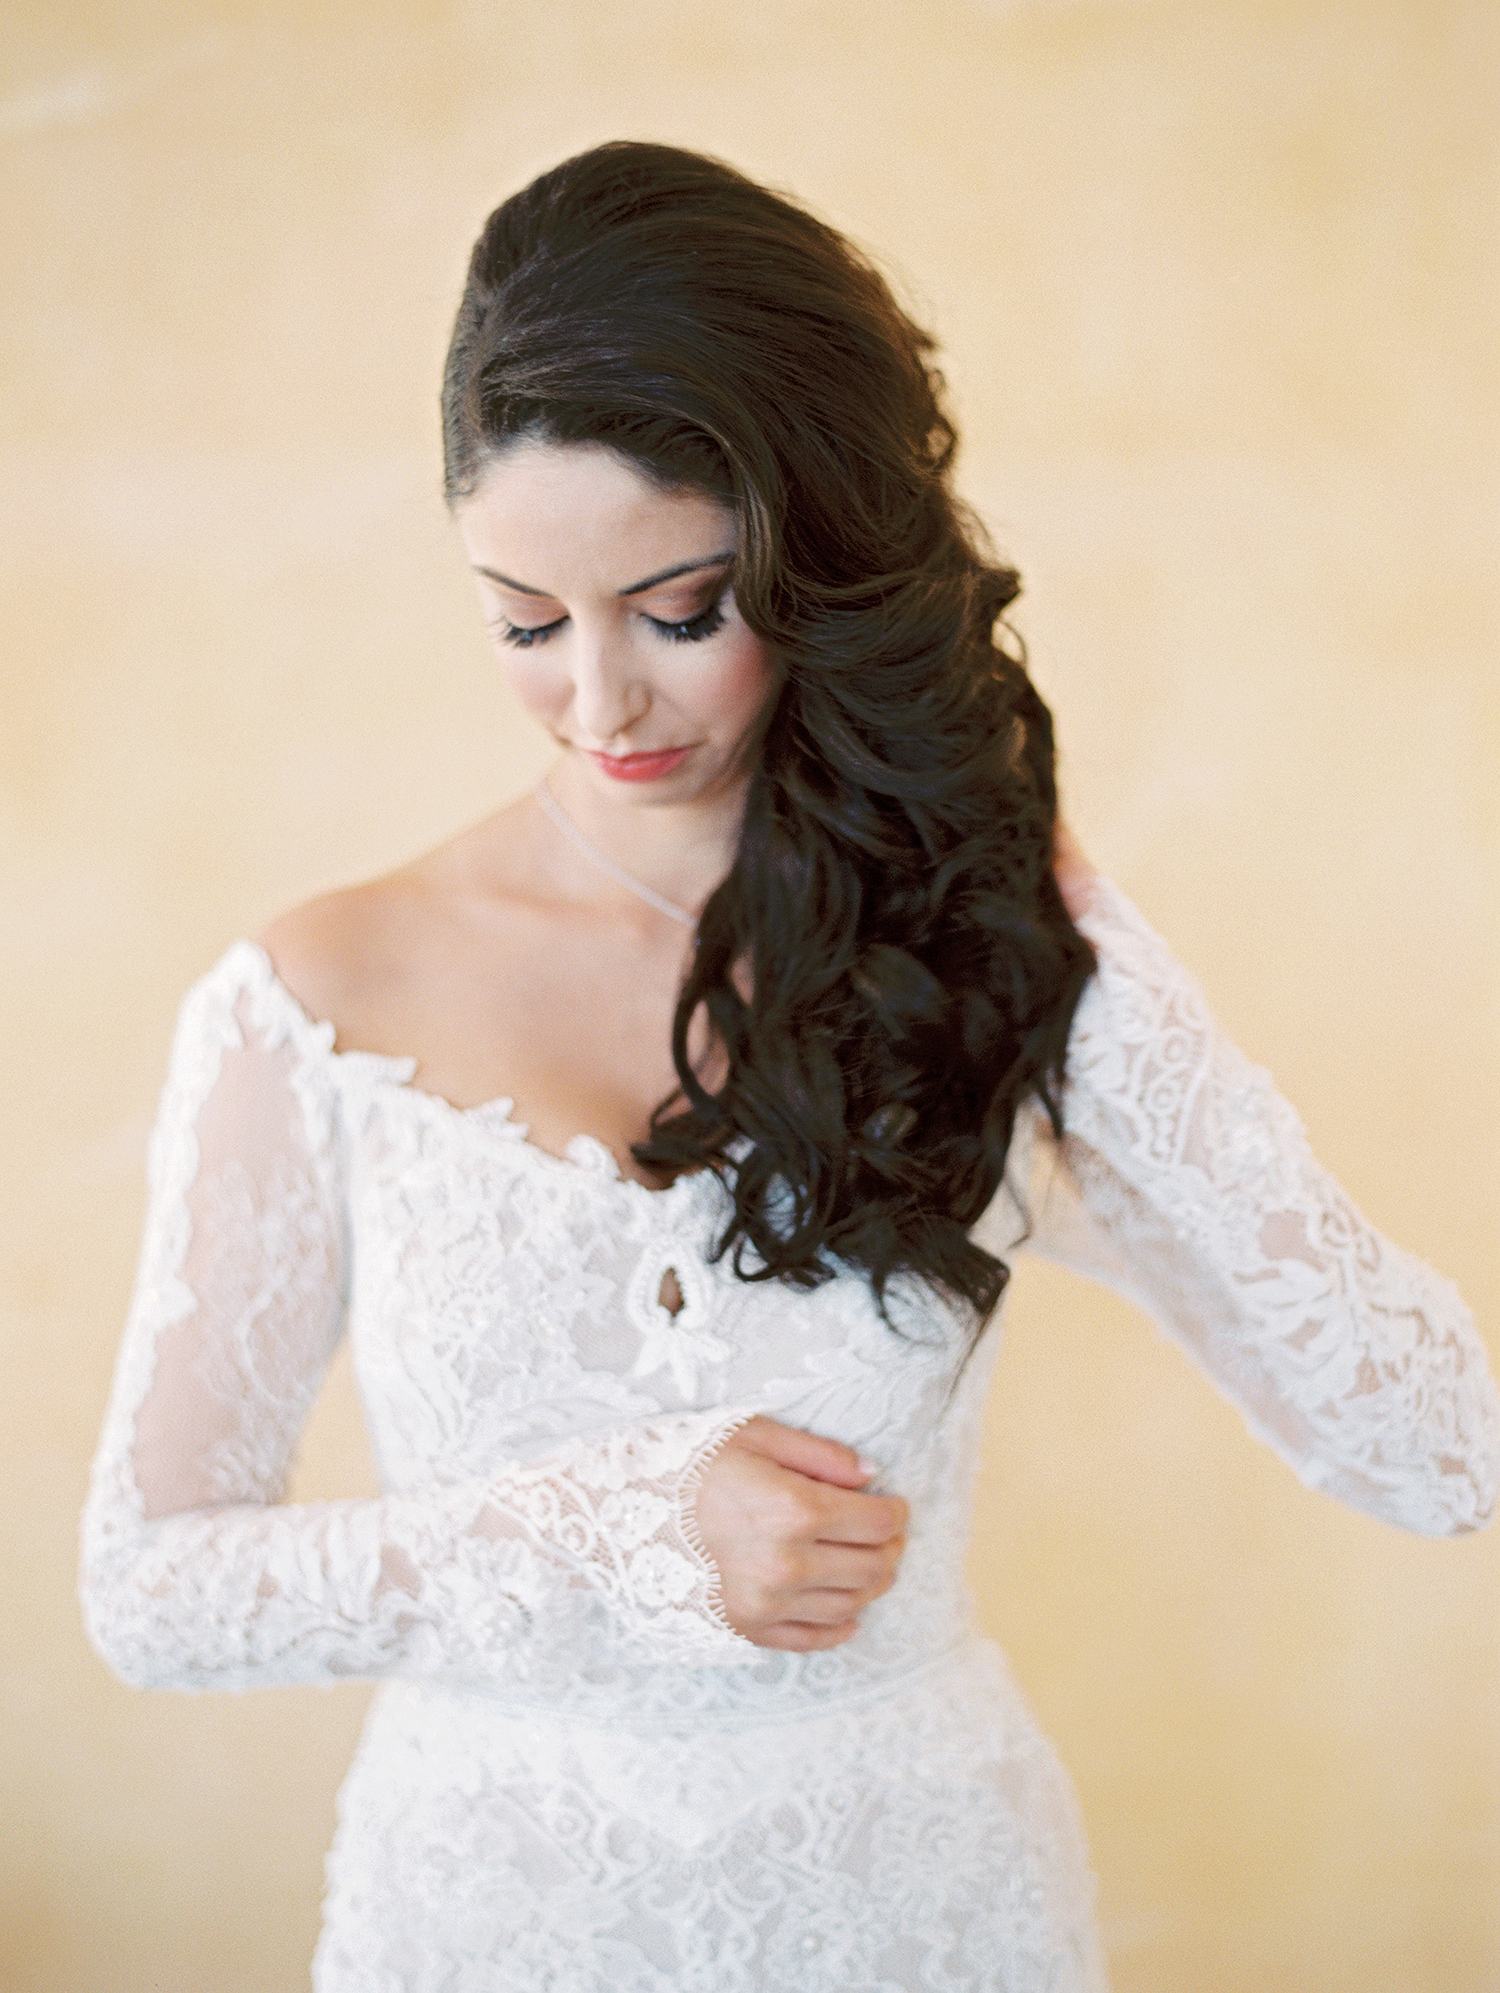 bride with off-the-shoulder dress and side-swept hair